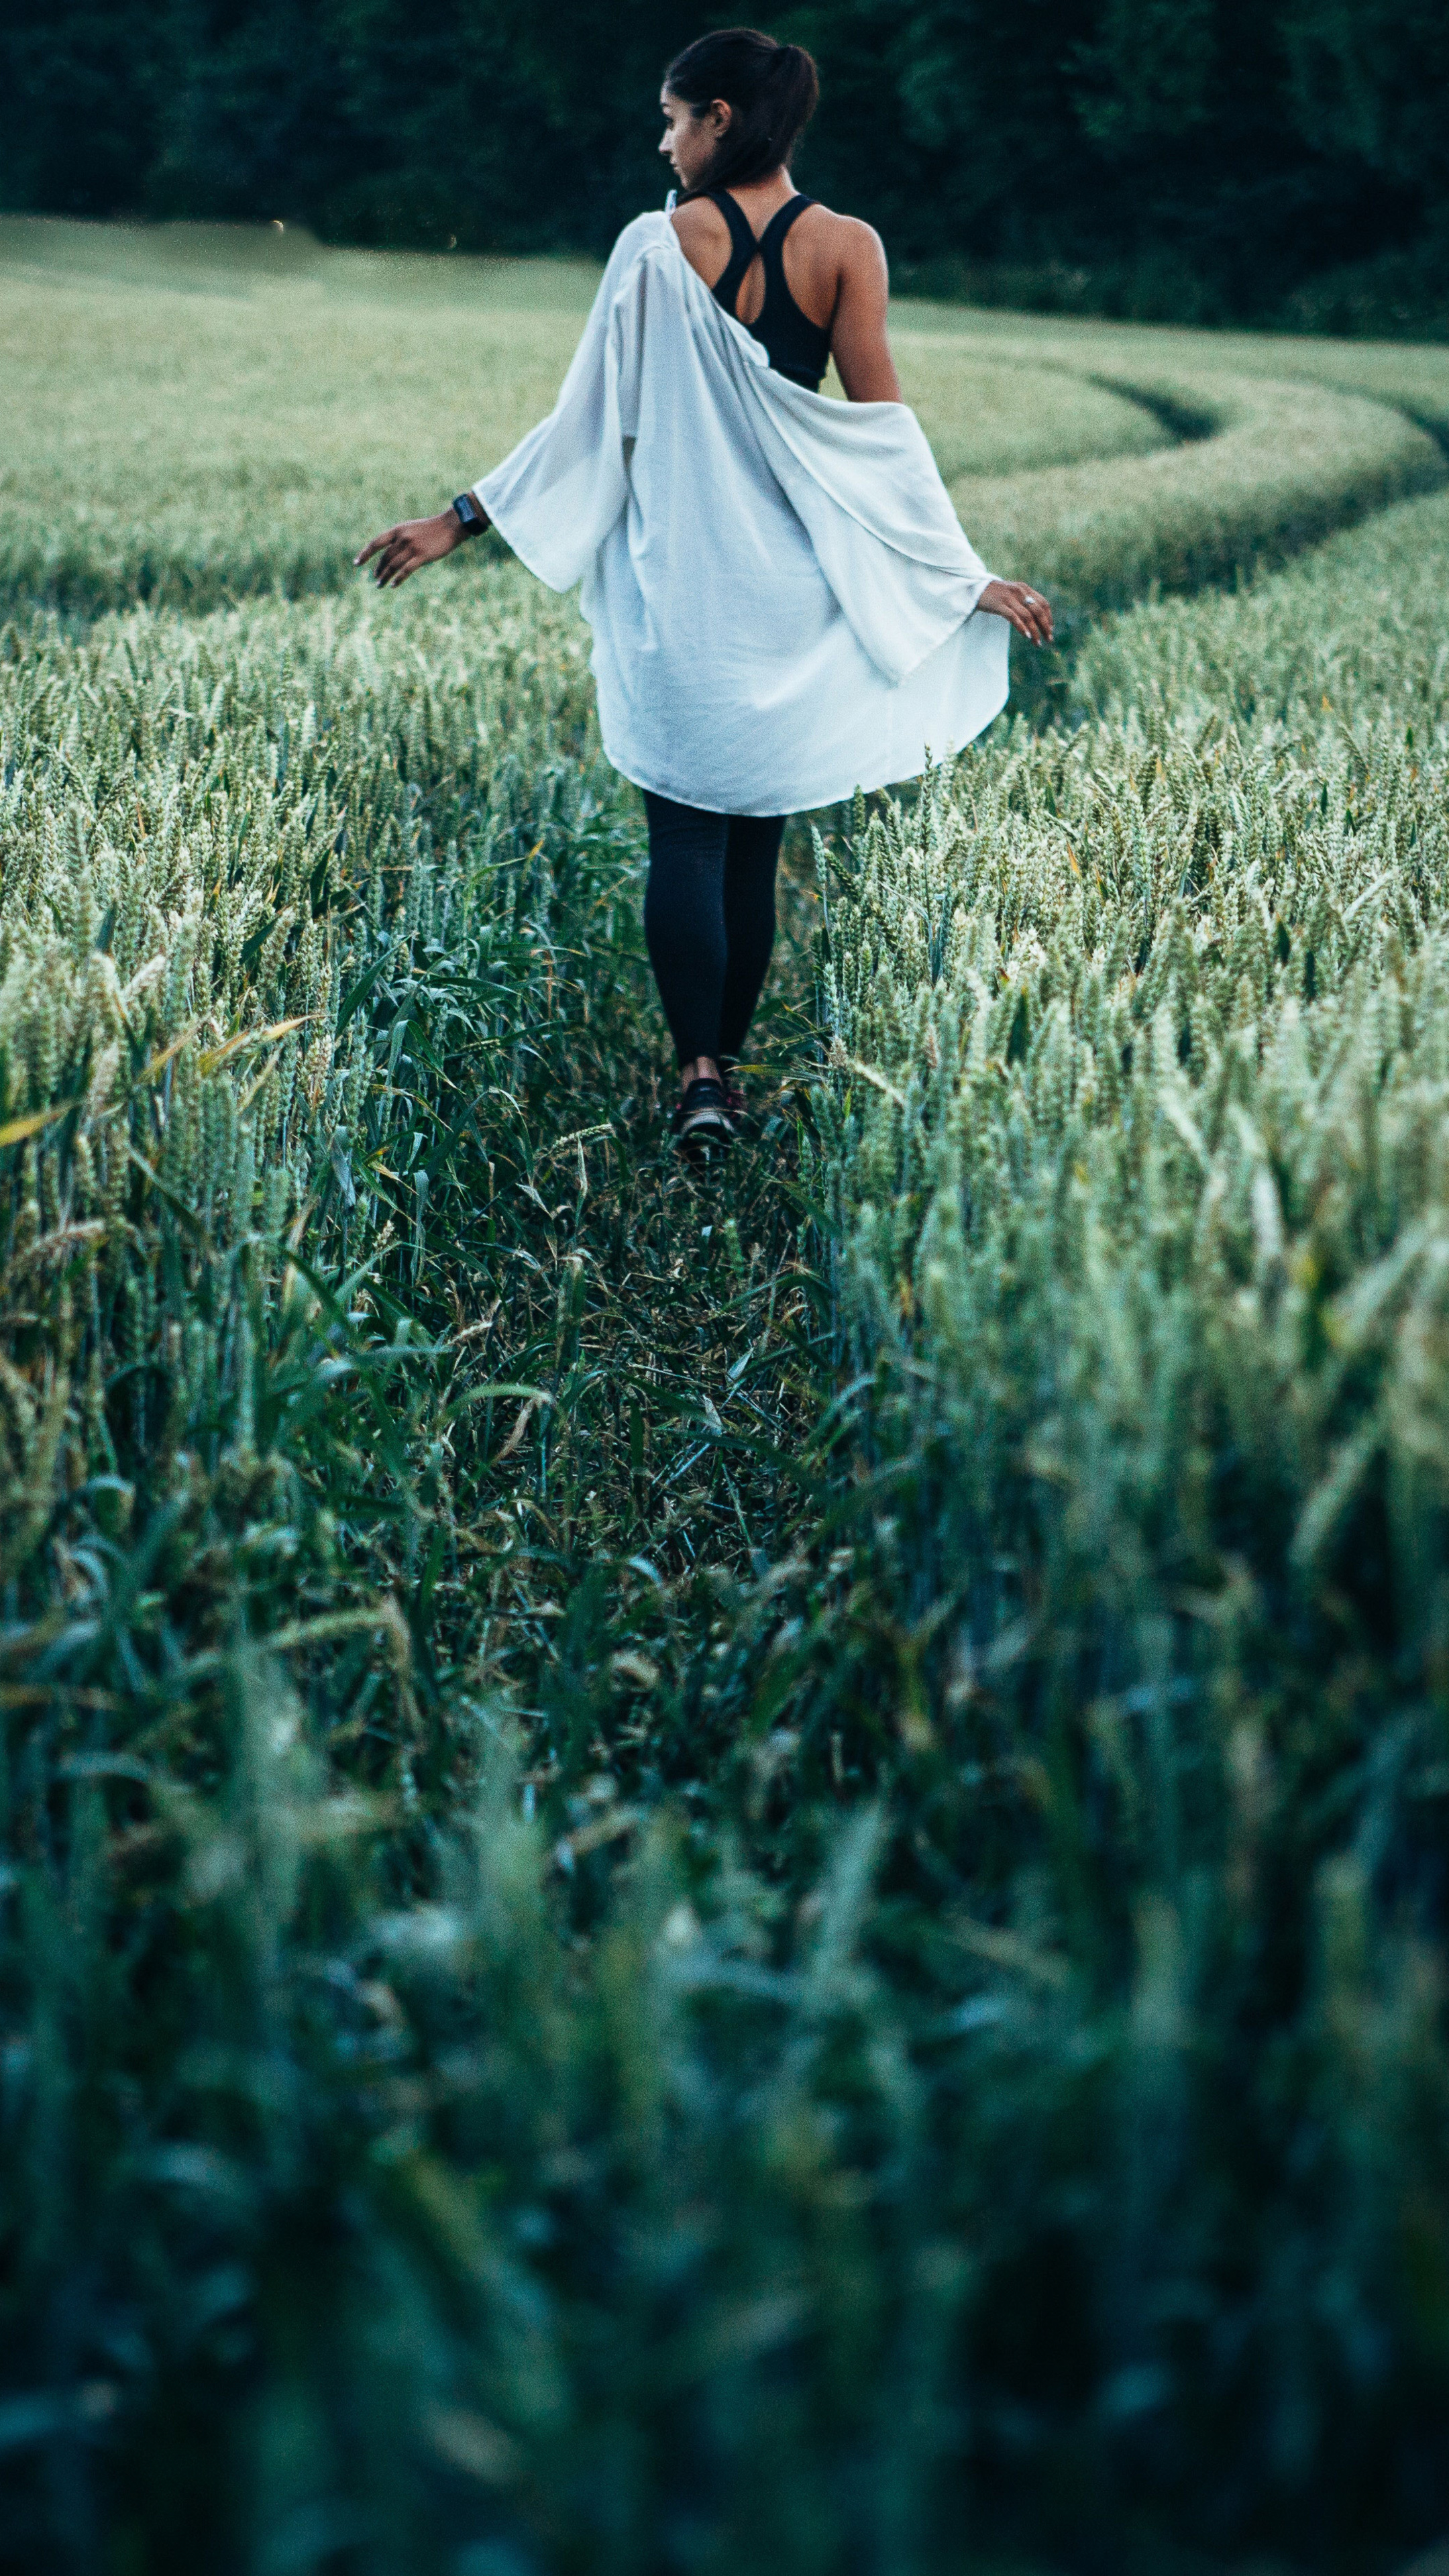 girl-walking-in-field-way-yl.jpg